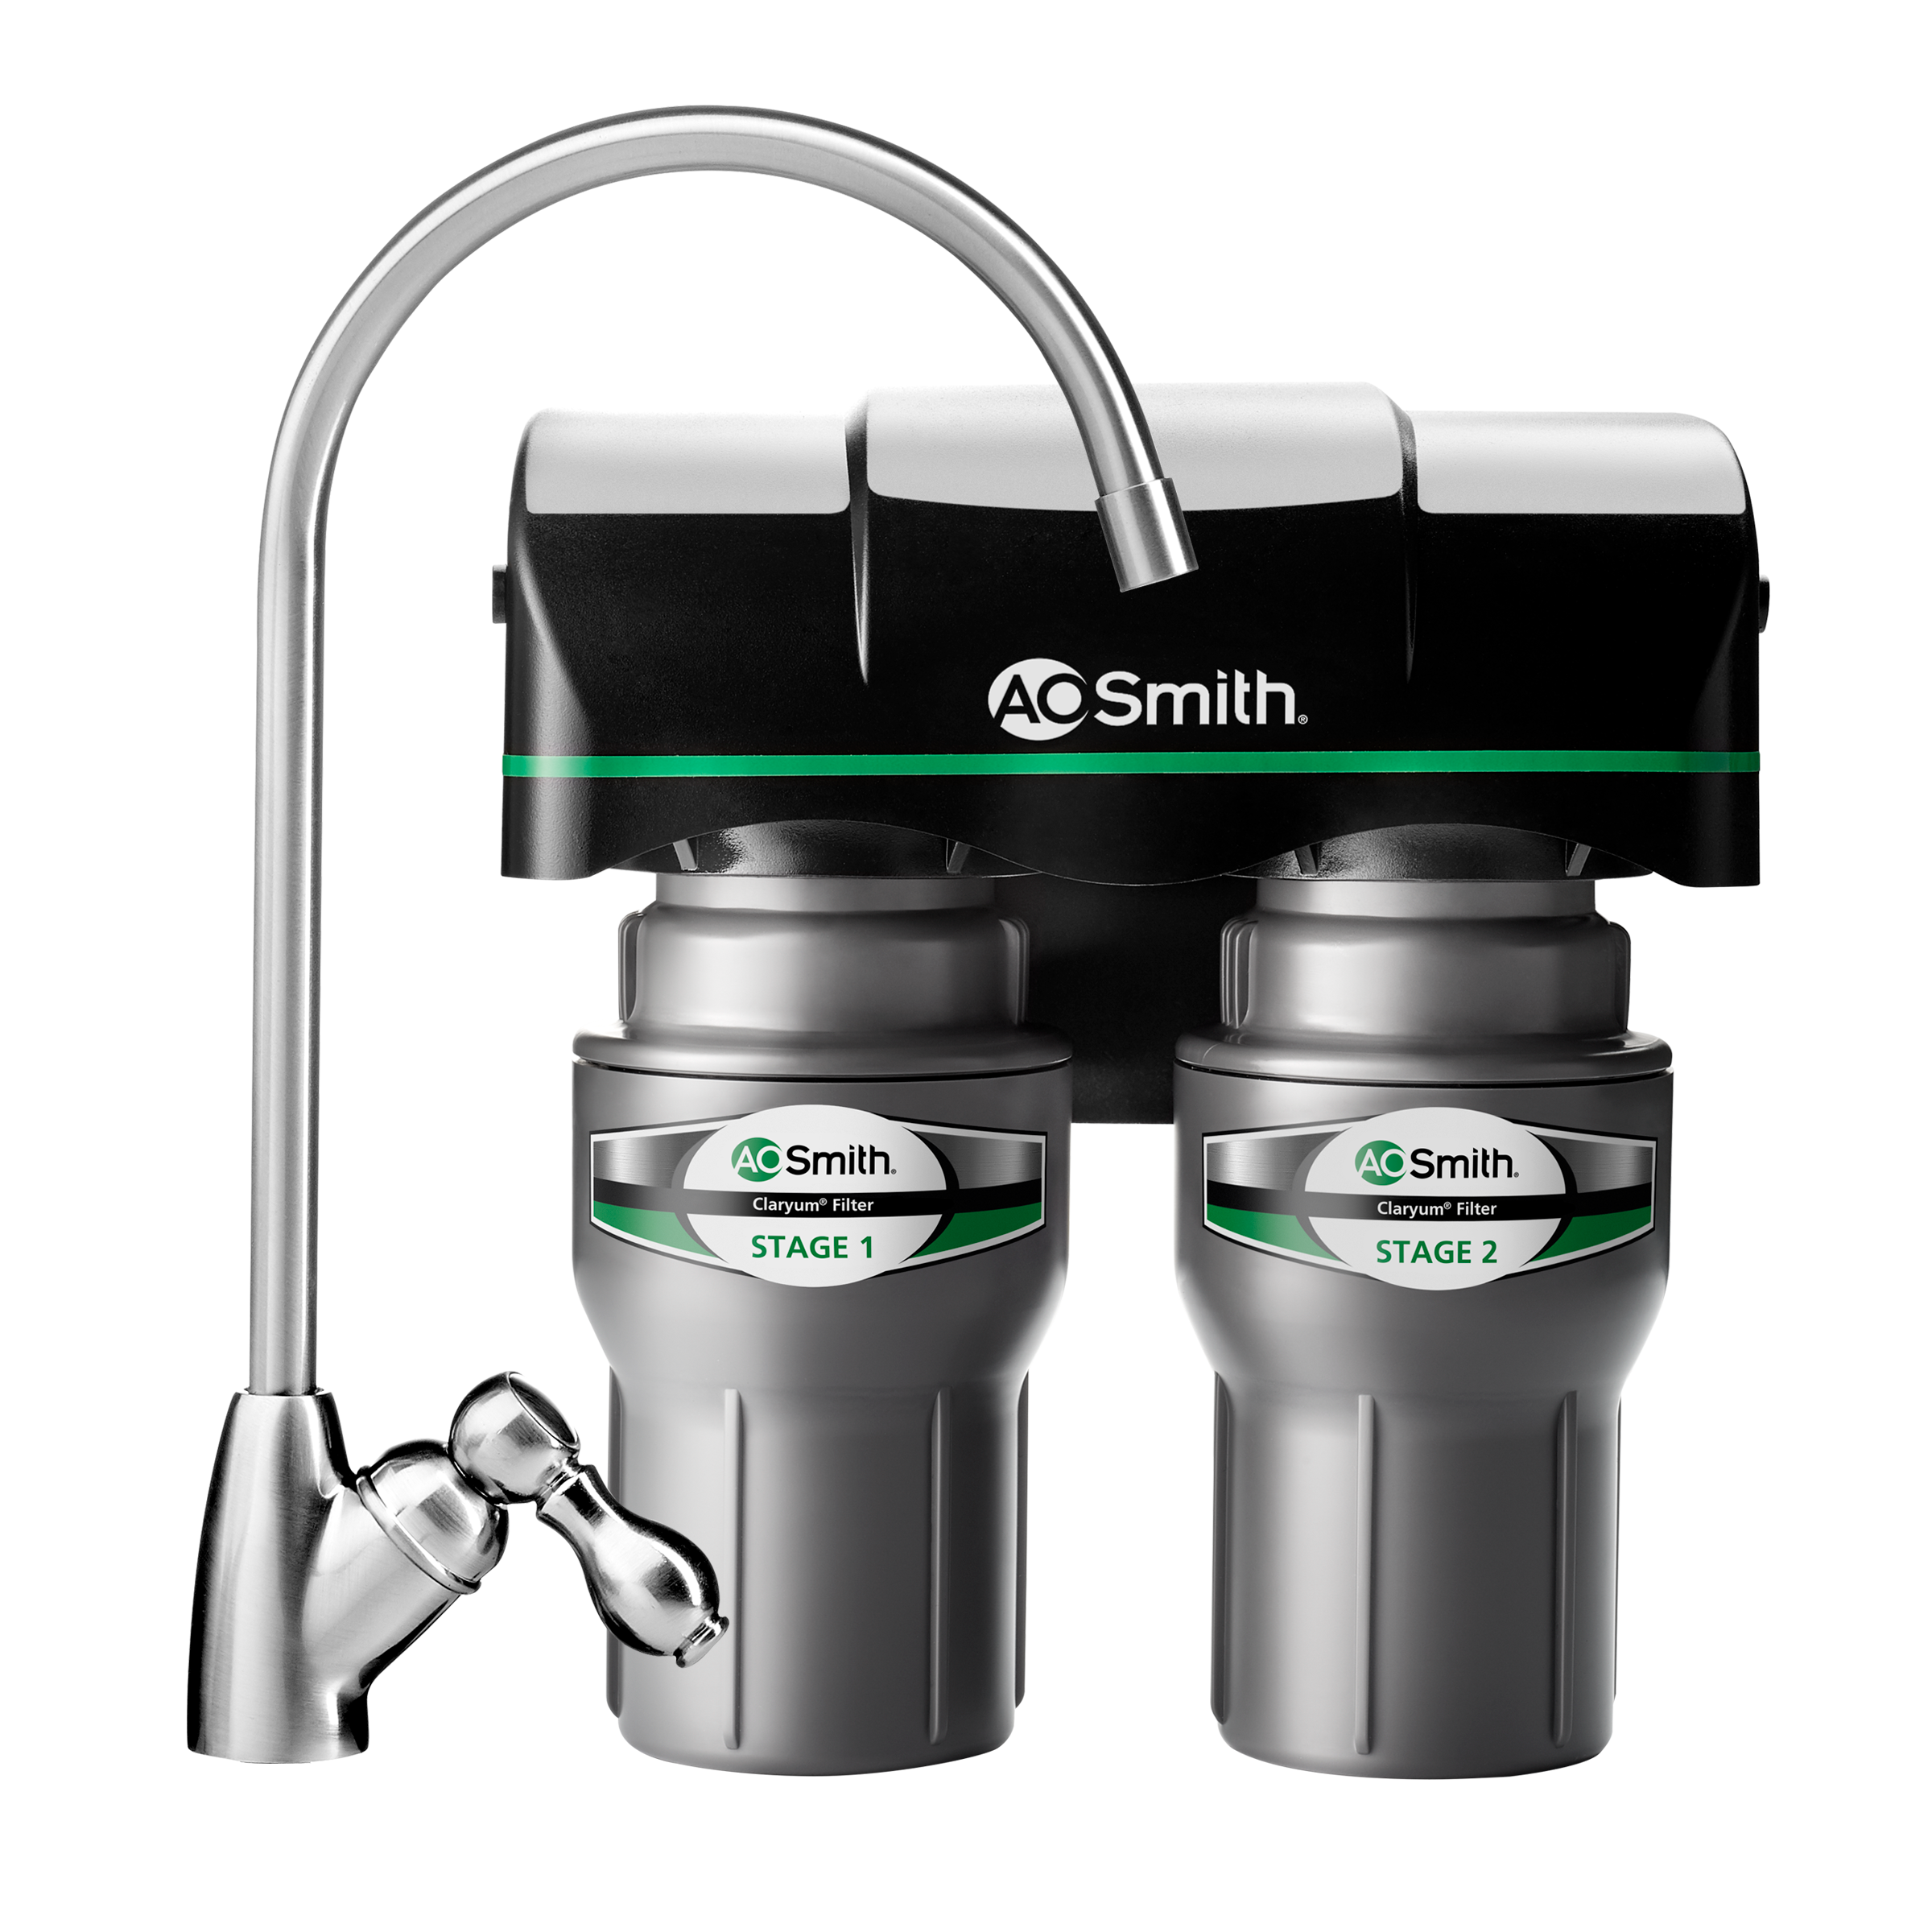 A. O. Smith Water Heaters at Lowes